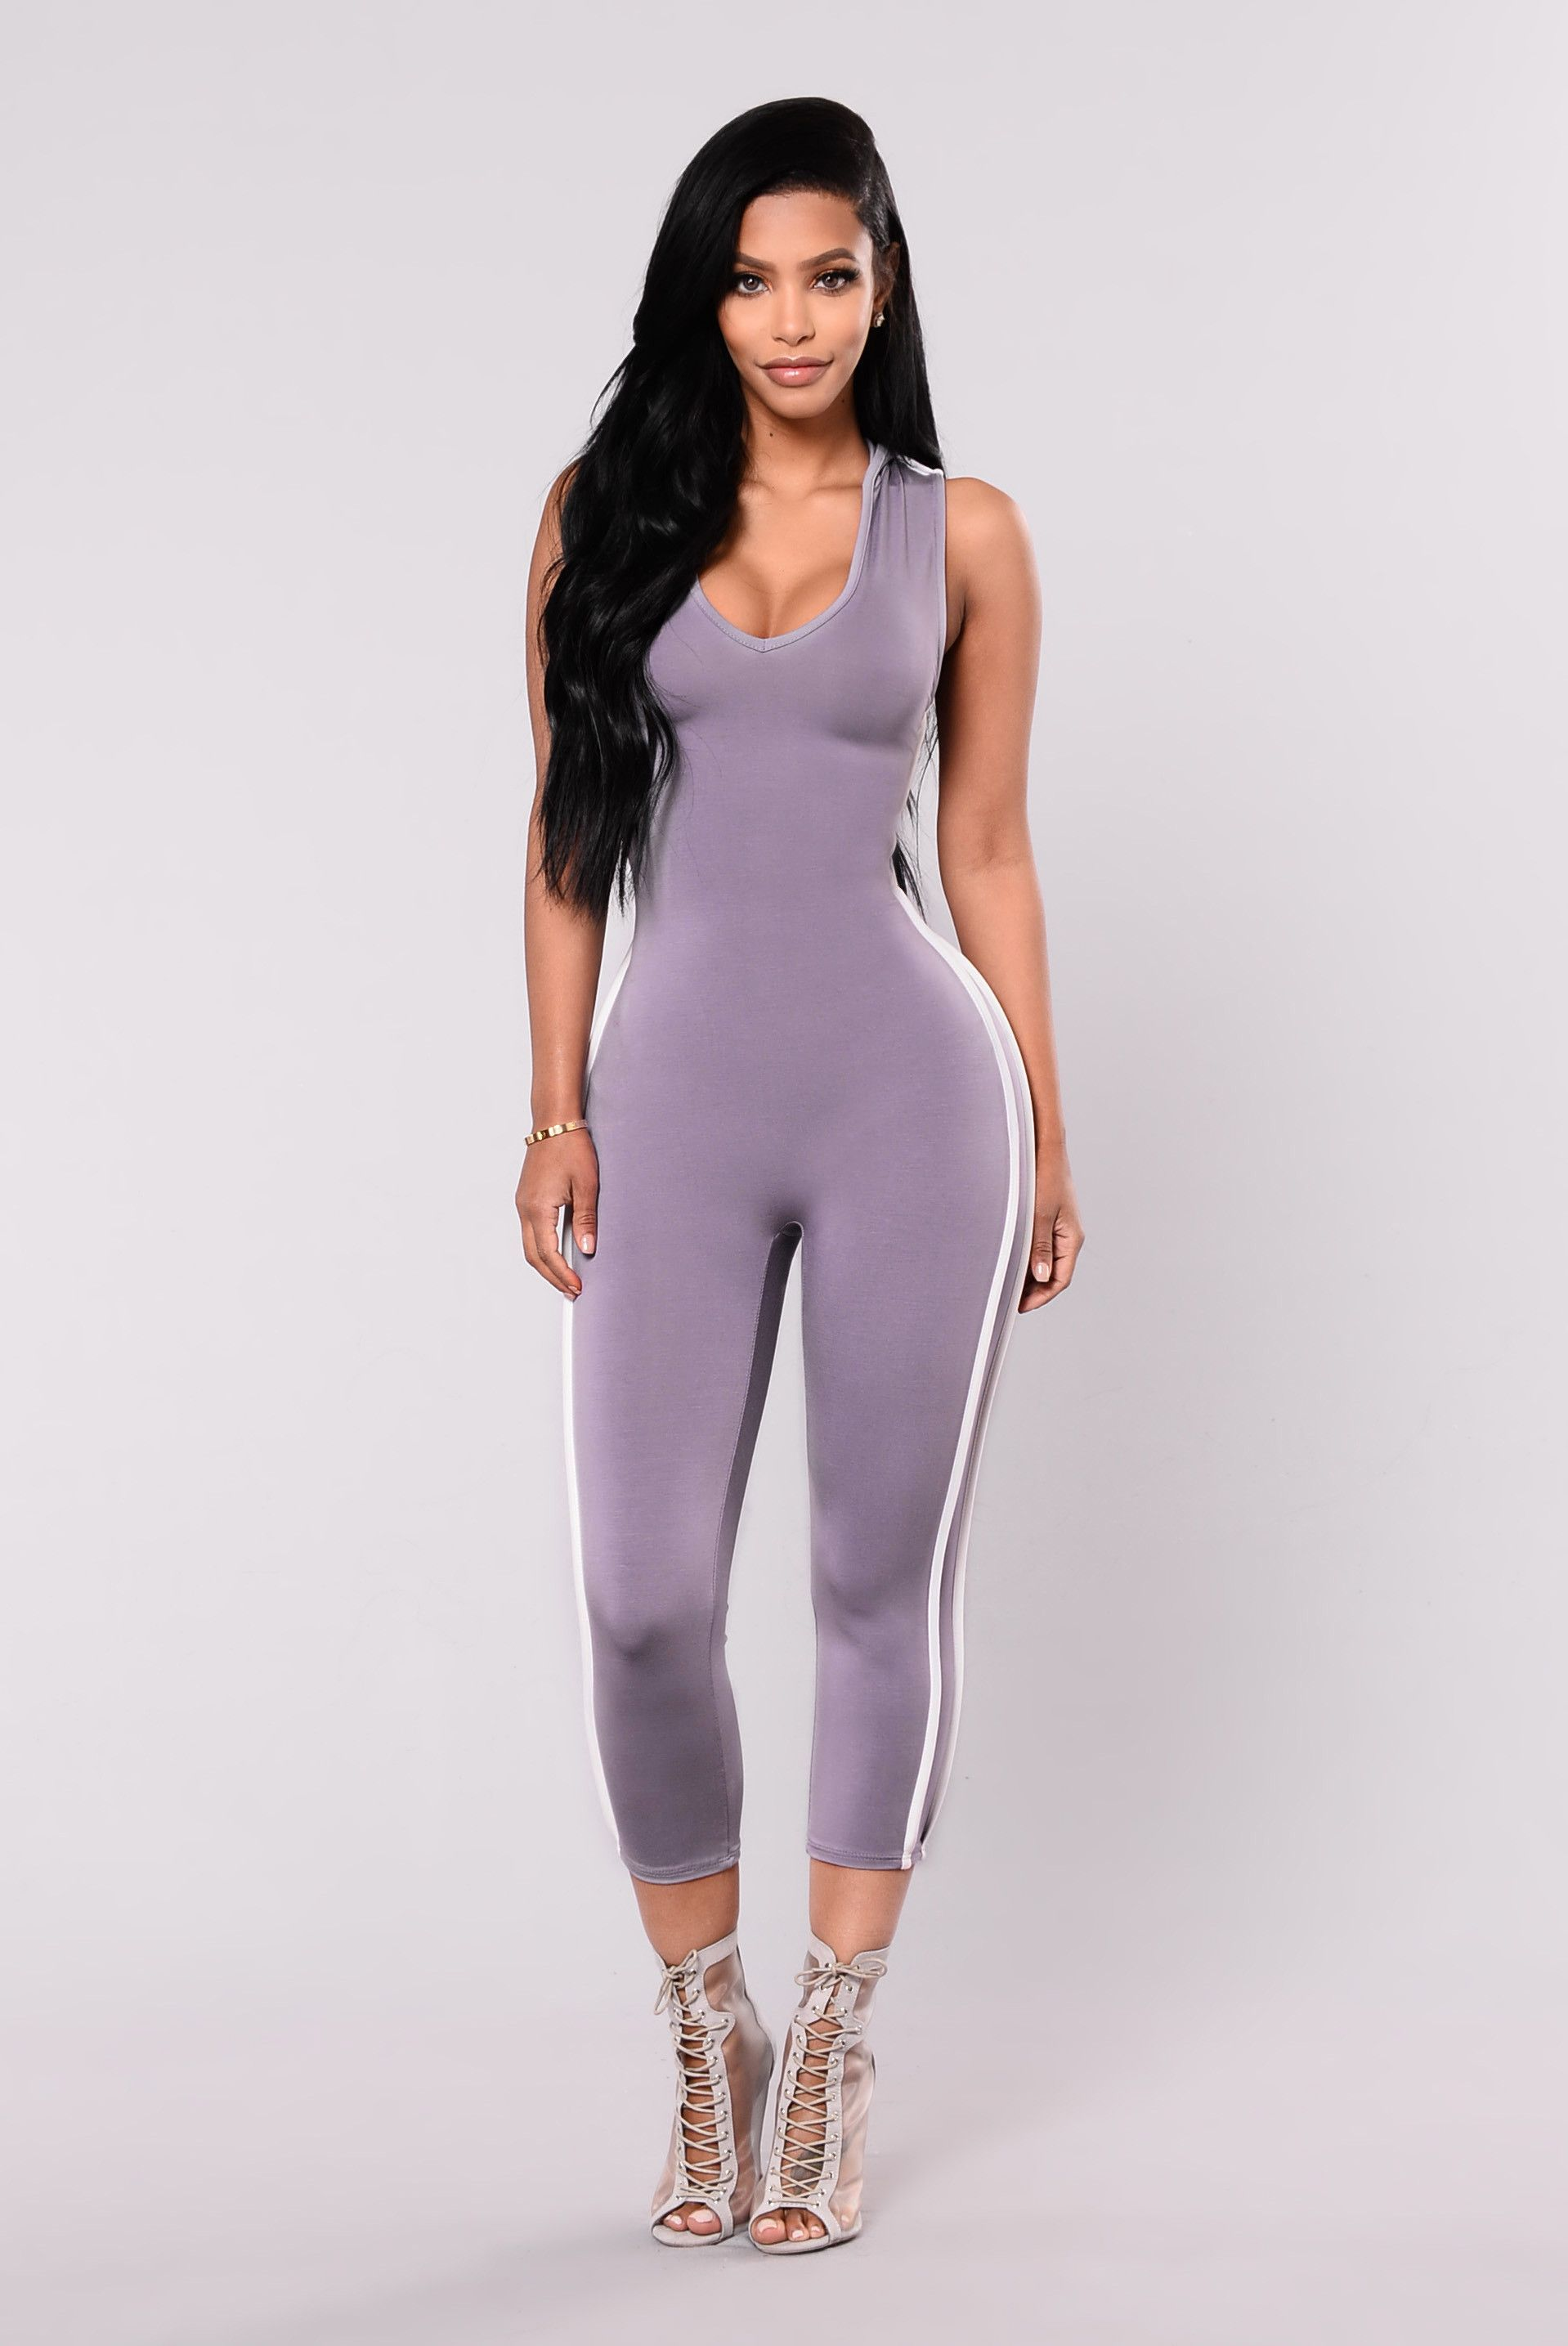 cd326616d0 Available In Black White And Lavender White Capri Jumpsuit 95% Rayon 5%  spandex Made In USA